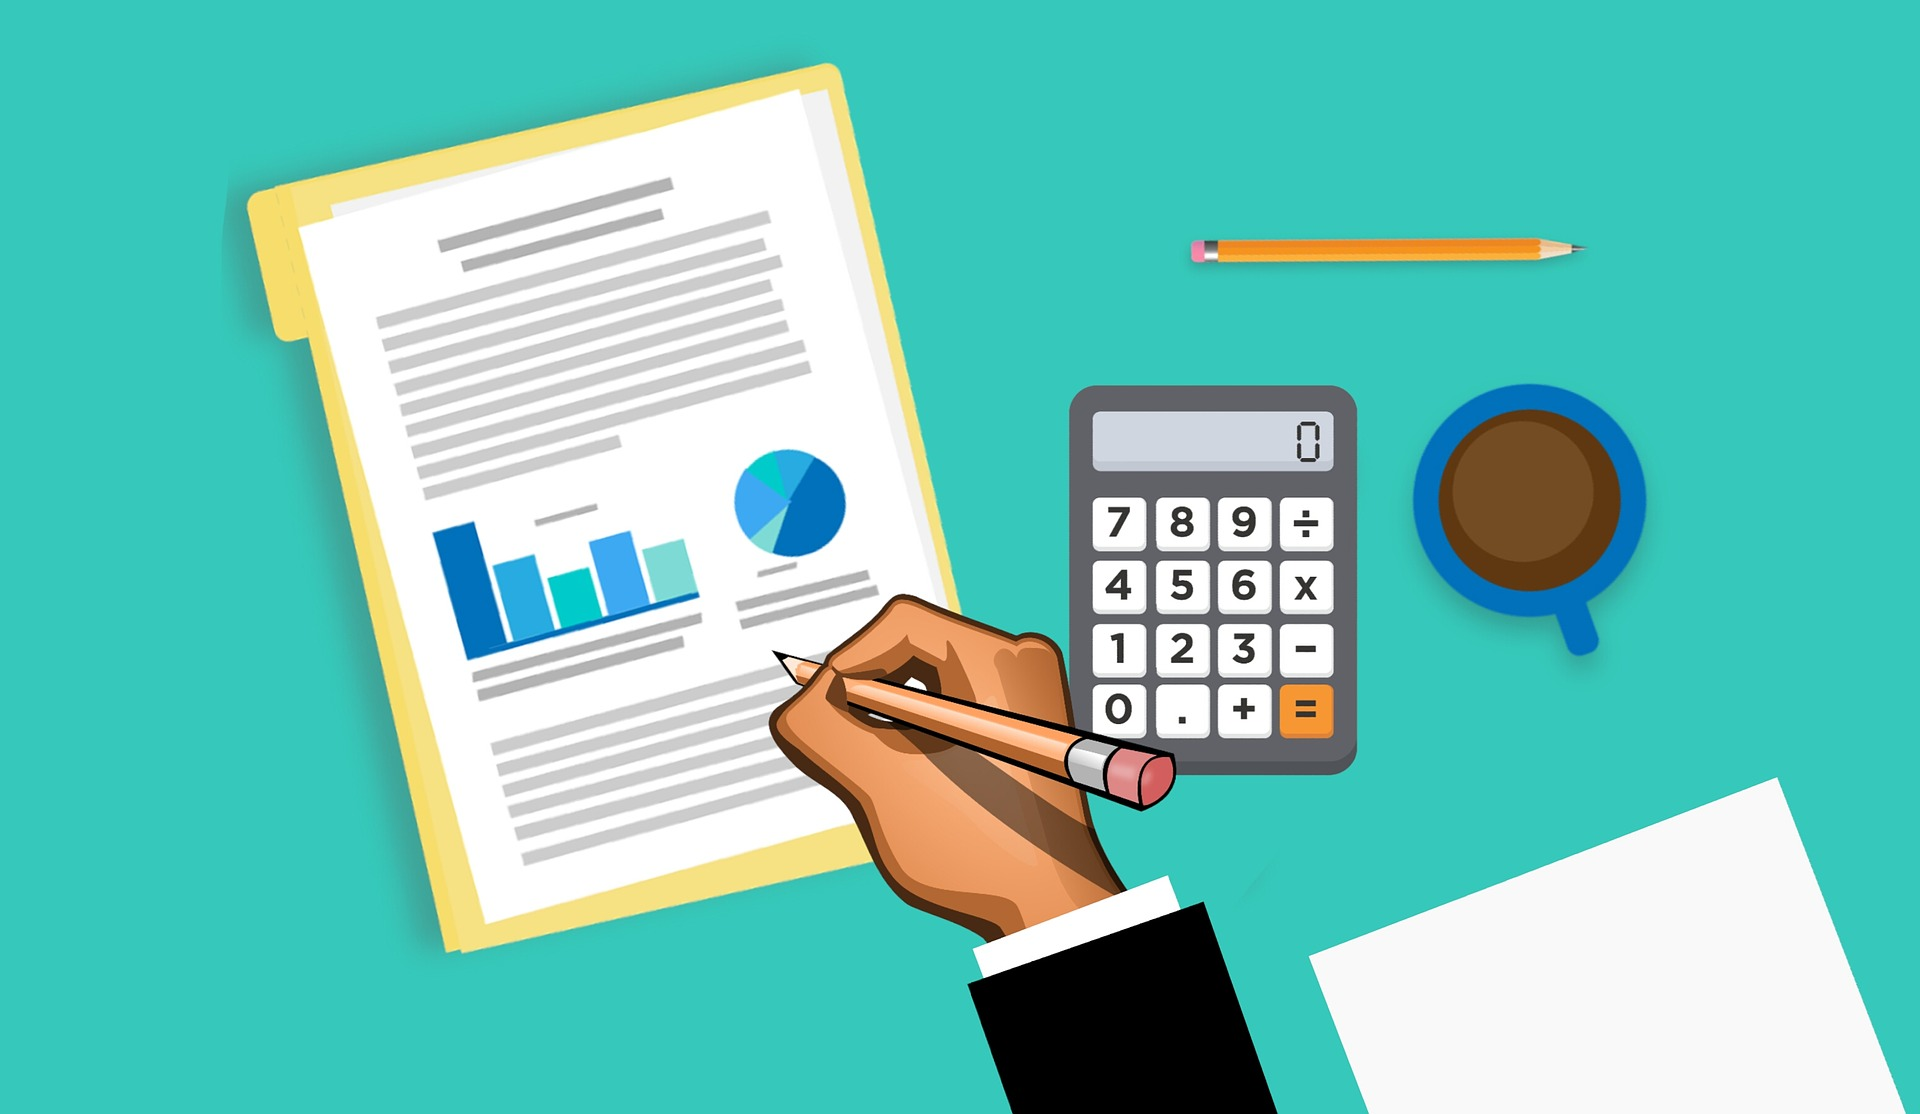 An animated image that depicts a recap of various business finance concepts.